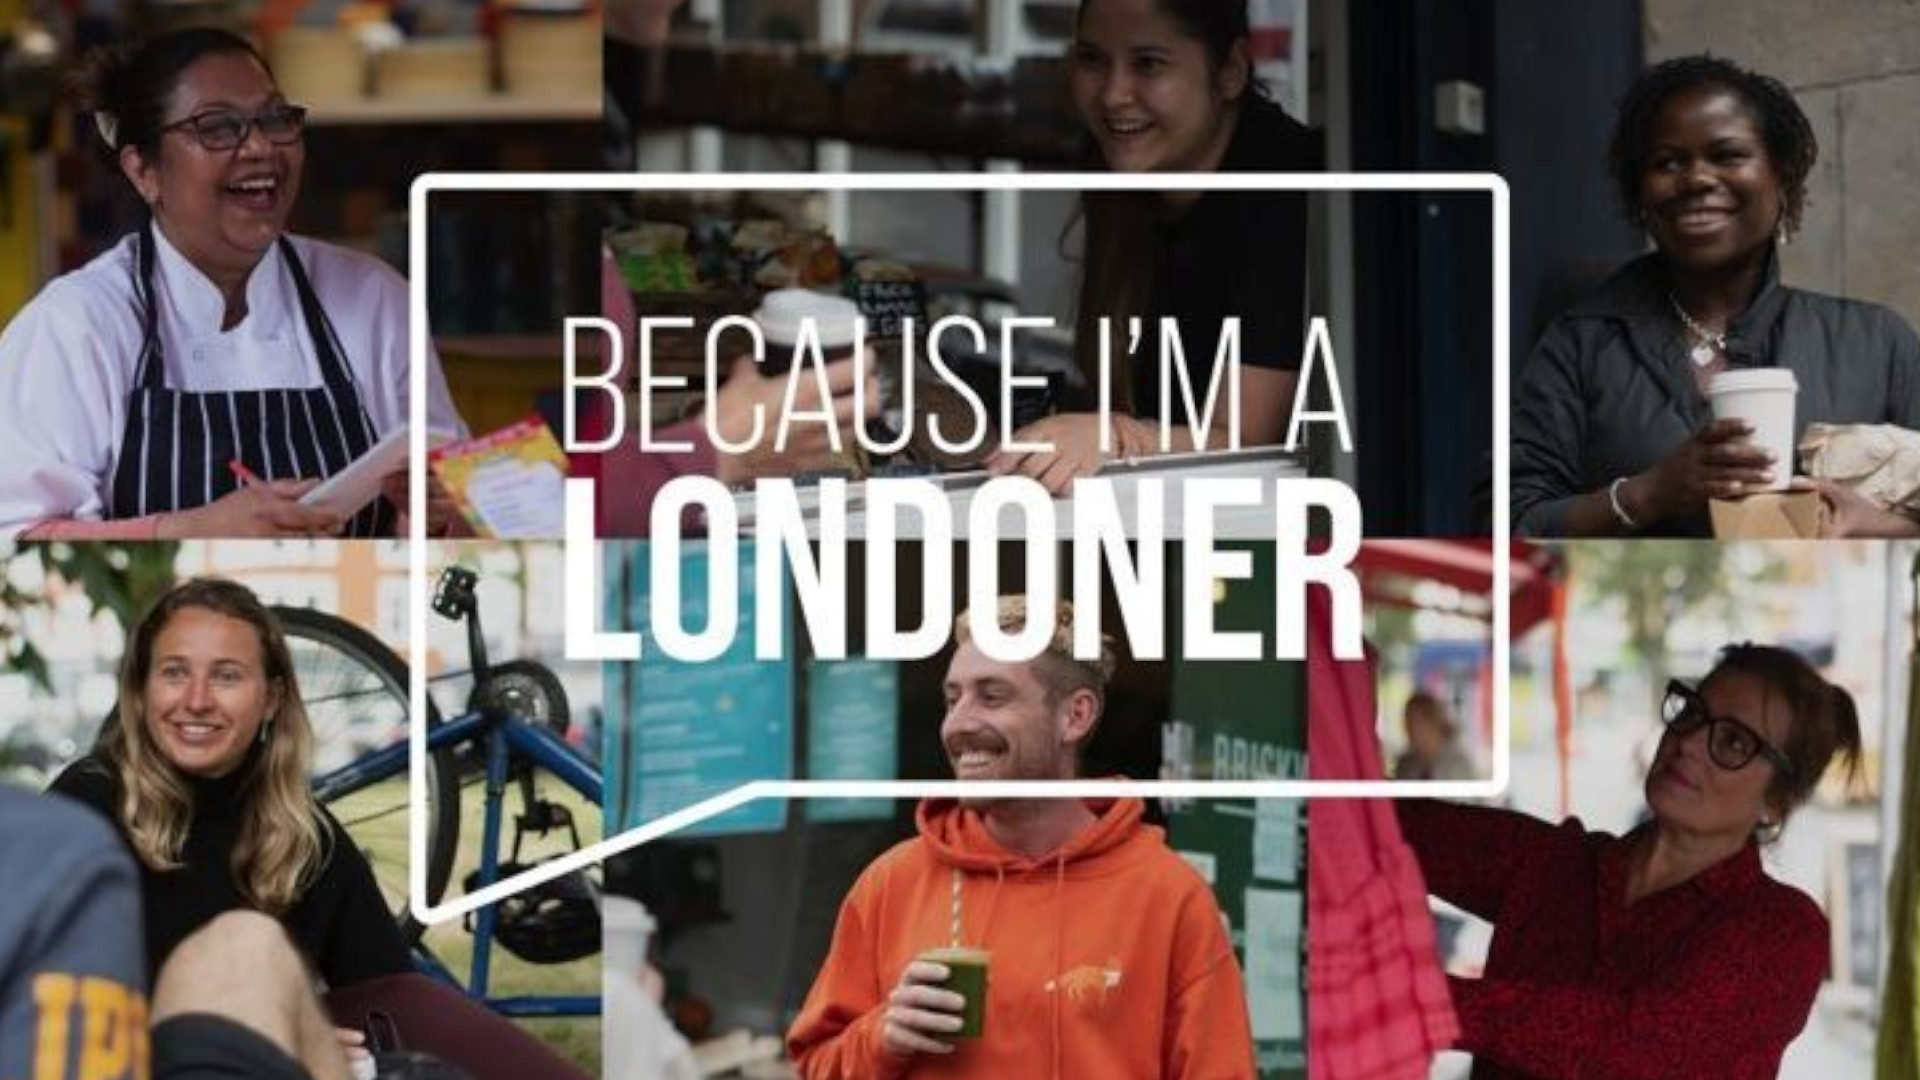 Because I'm A Londoner Campaign, London UK